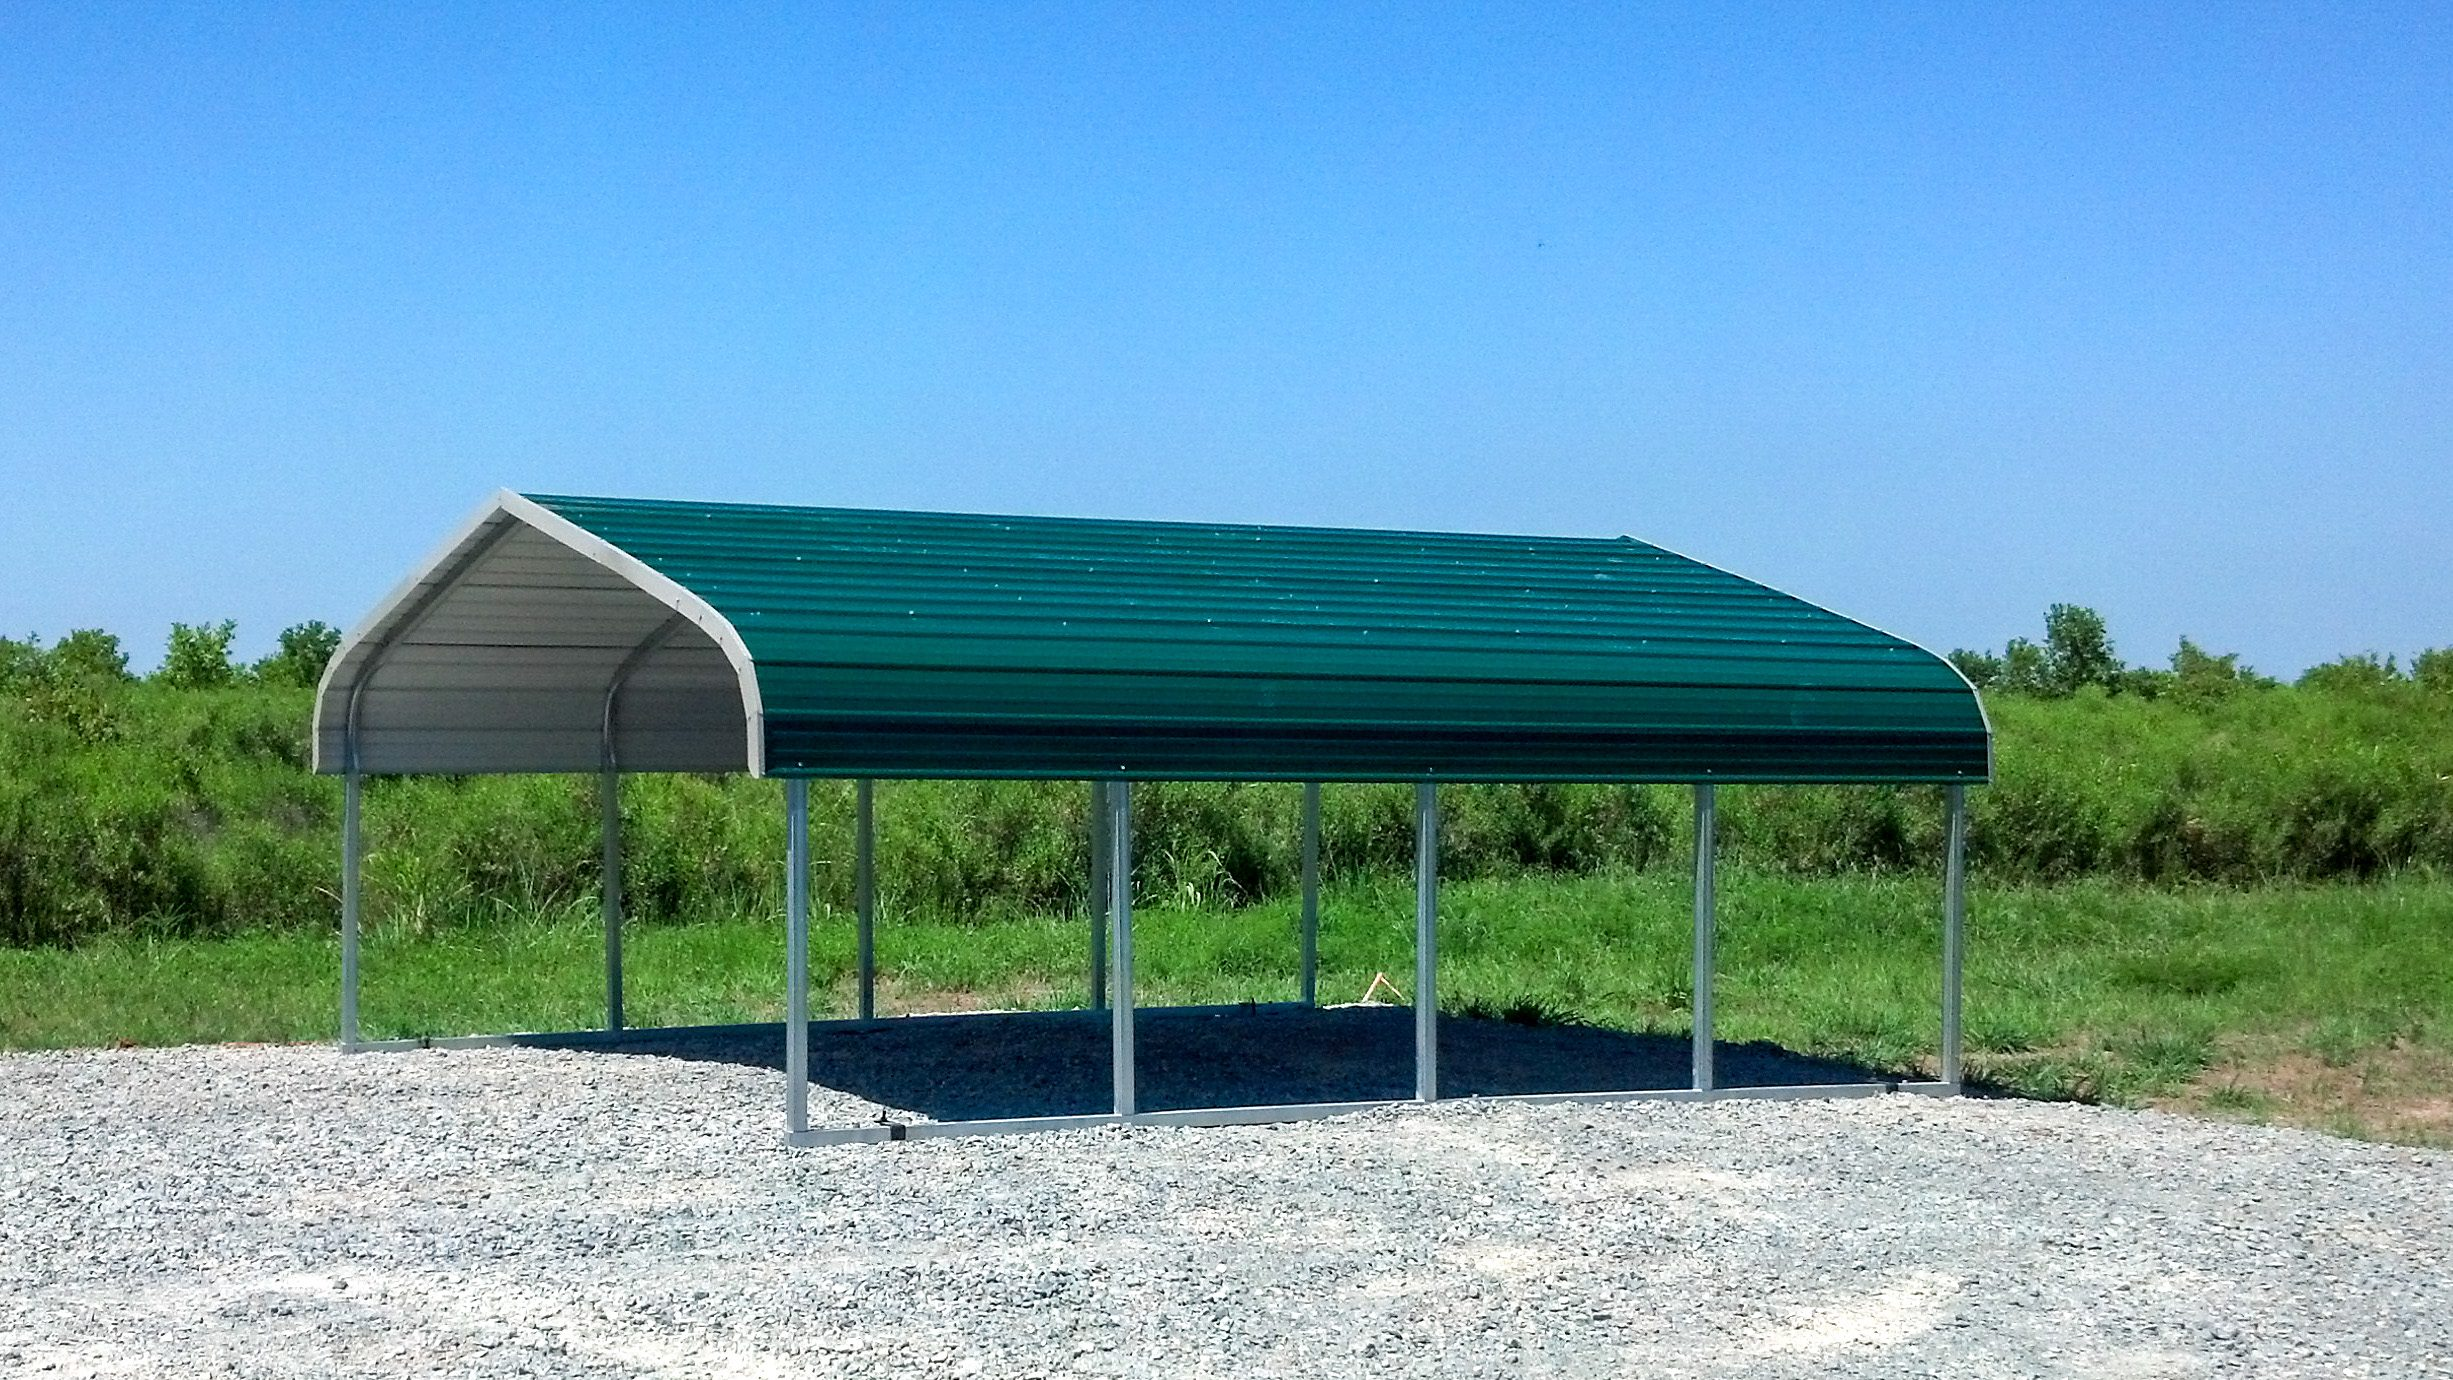 is it cheaper to build or buy a carport?